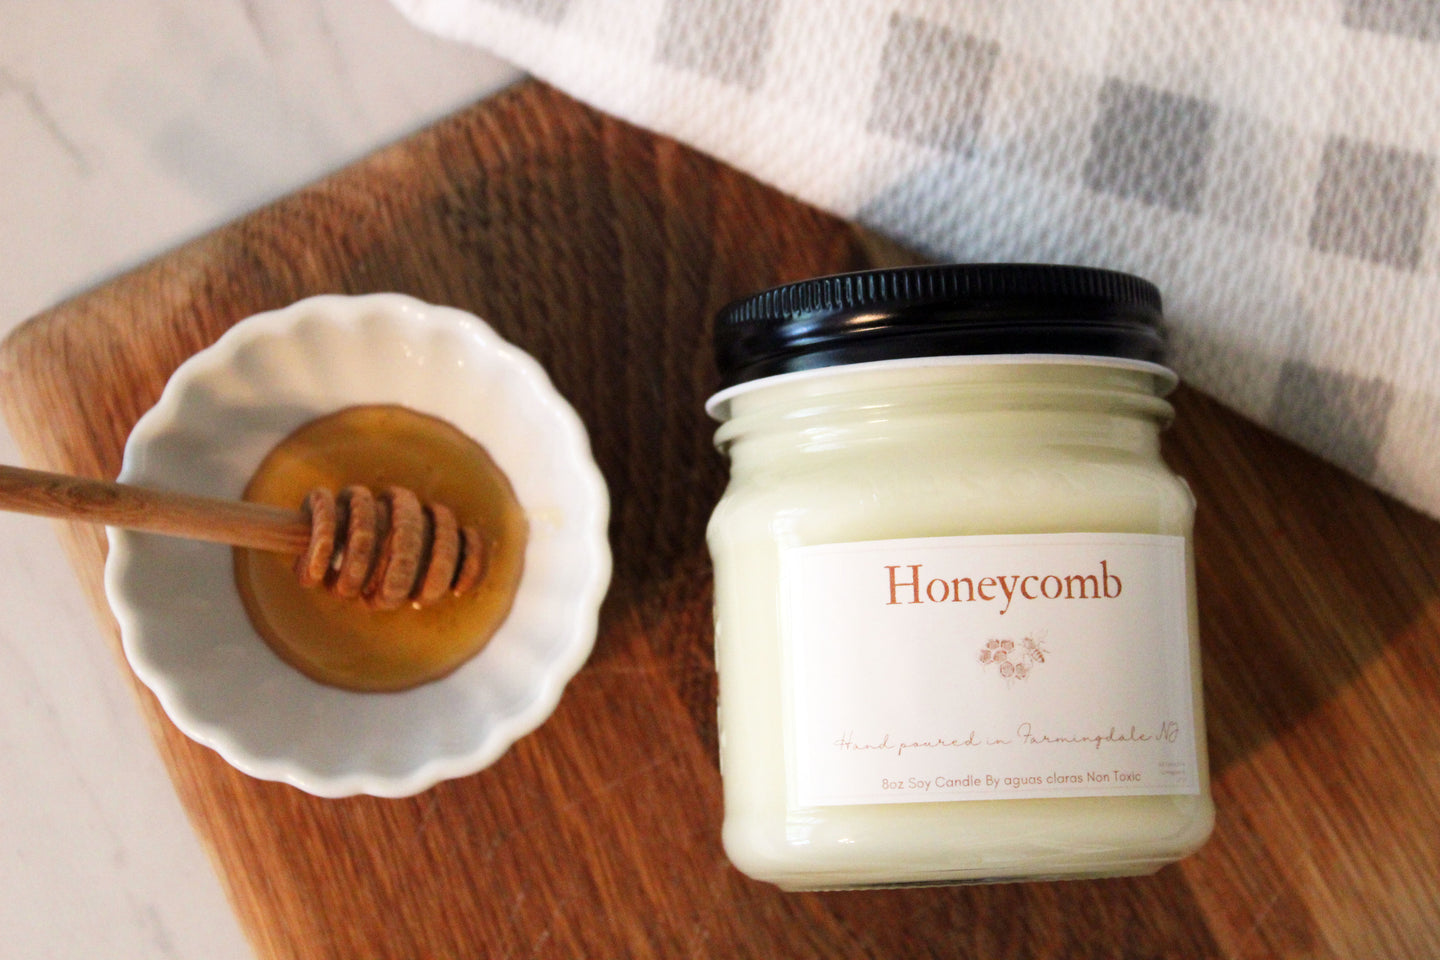 Honeycomb Soy Candle